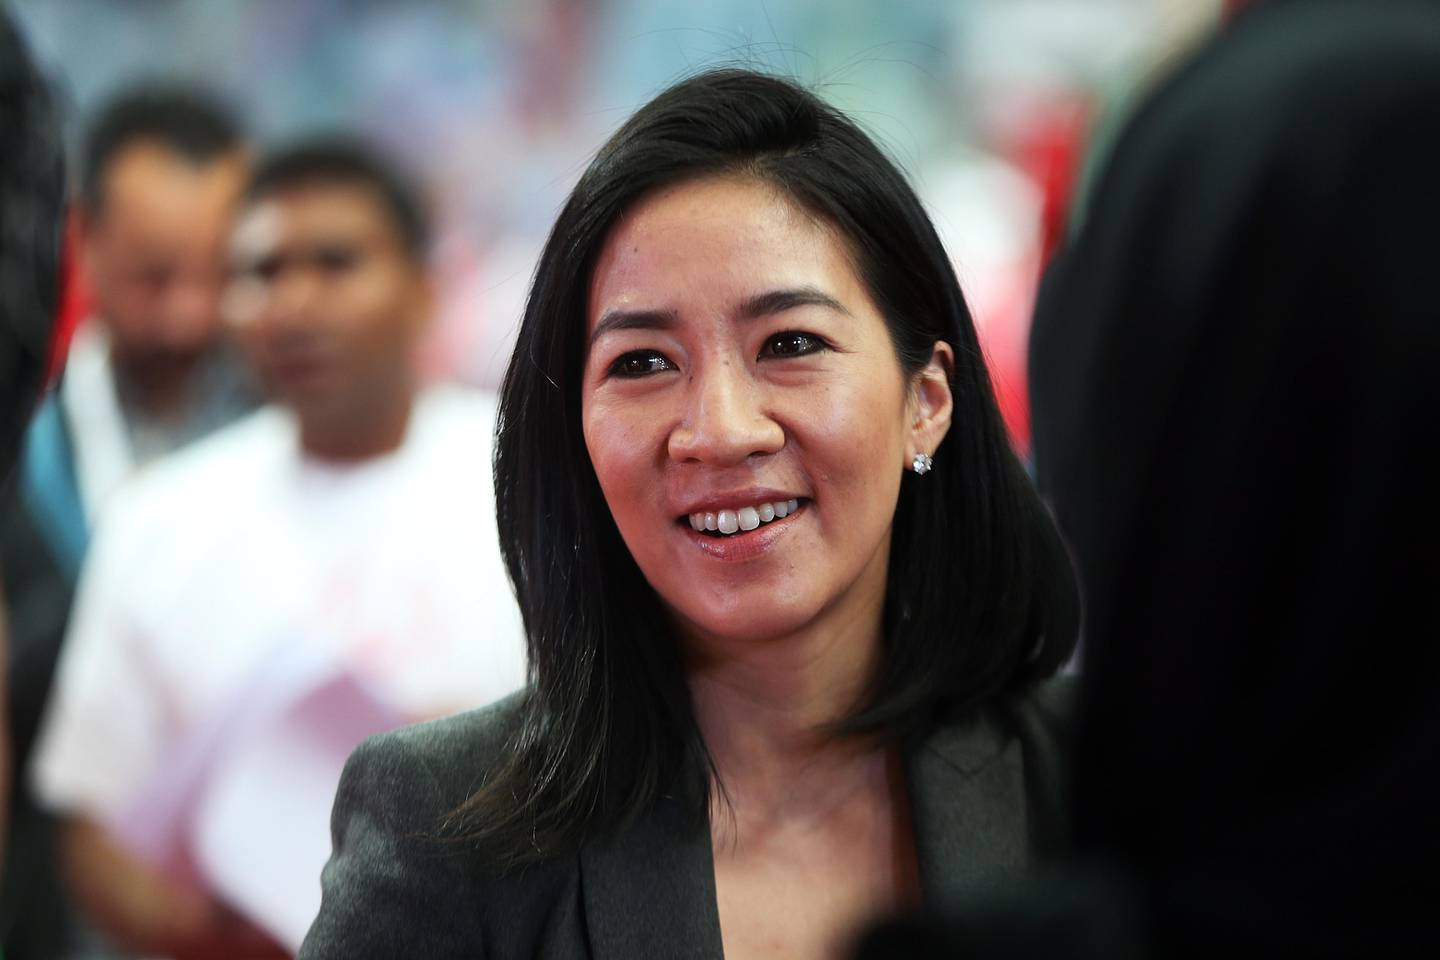 ABU DHABI, UNITED ARAB EMIRATES - - -  24 January 2017 --- Former figure skater Michelle Kwan, elected to the Board of Directors of Special Olympics International, was at the press conference that was held on Tuesday, January 24, 2017, at the IPIC Arena to announce the plans for the Special Olympics World Games, which Abu Dhabi will host in 2019.    (  DELORES JOHNSON / The National  )   ID: 28498 Reporter:  Melanie Swann Section: NA *** Local Caption ***  DJ-240117-NA-Special Olympics-28498-018.jpg